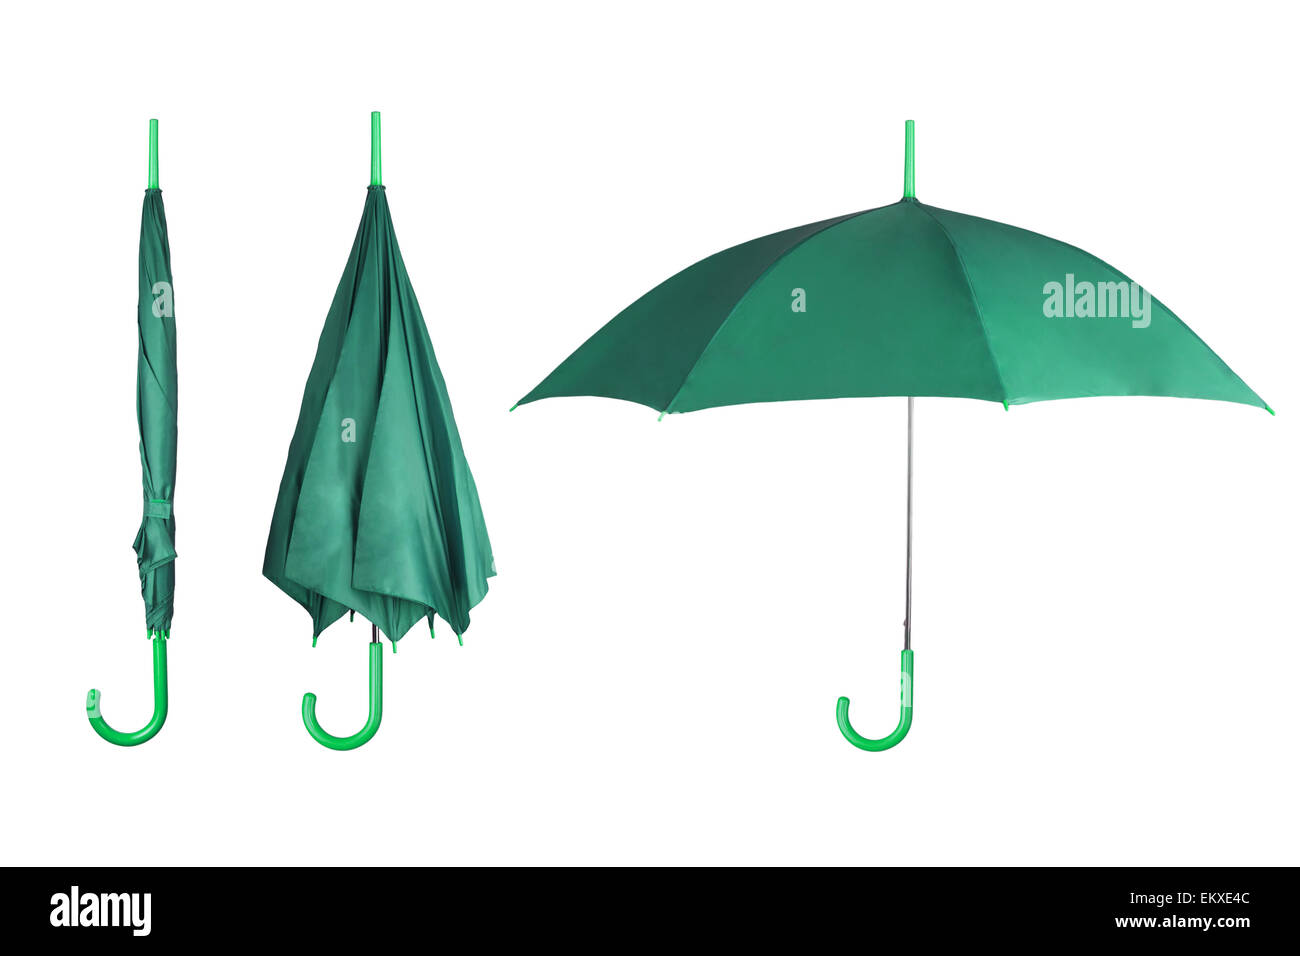 Set of umbrellas - Stock Image